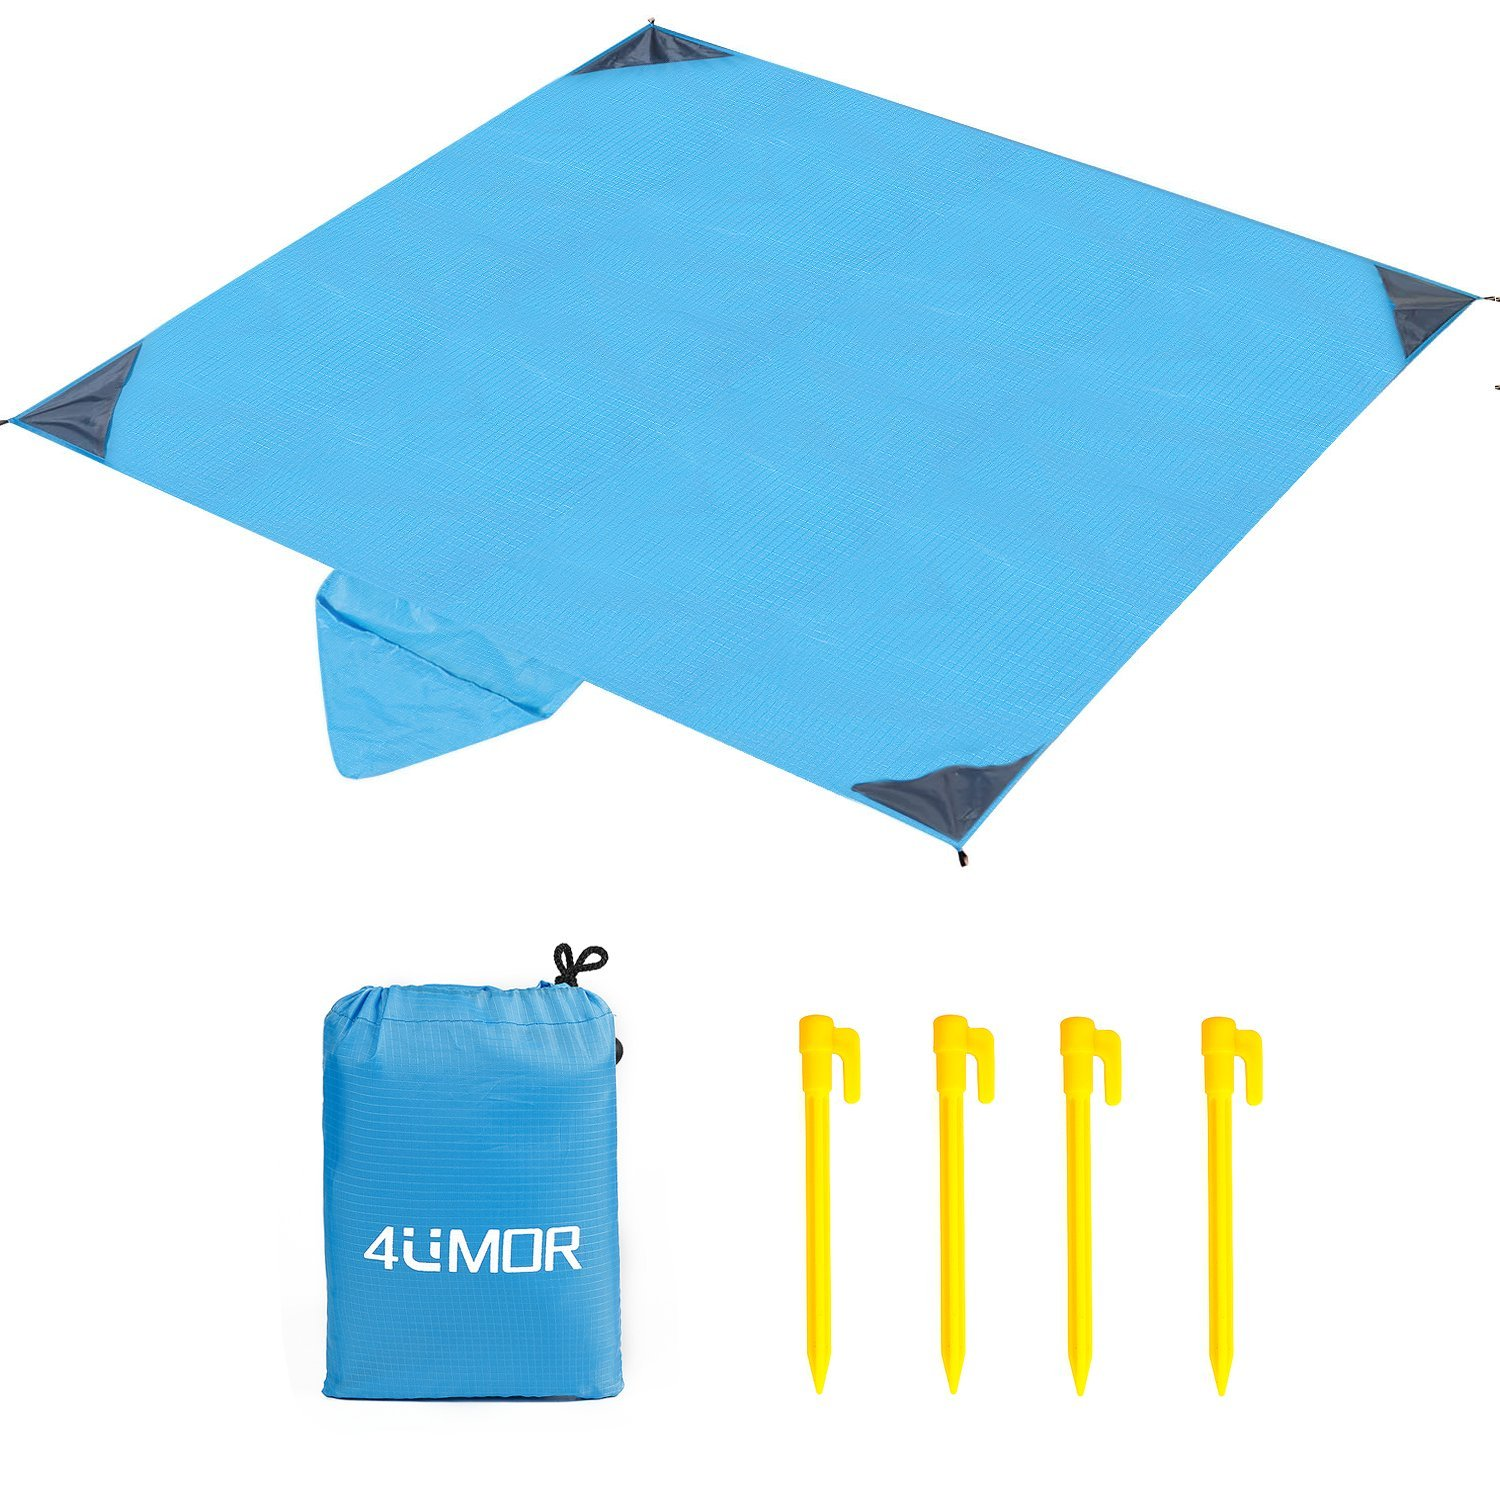 4UMOR Picnic Blanket, Portable Lightweight Waterproof Sandproof Pocket Beach Blanket - 140cm x 200cm Large Picnic Mat and for Outdoor Travel Camping Hiking Activities (Black)